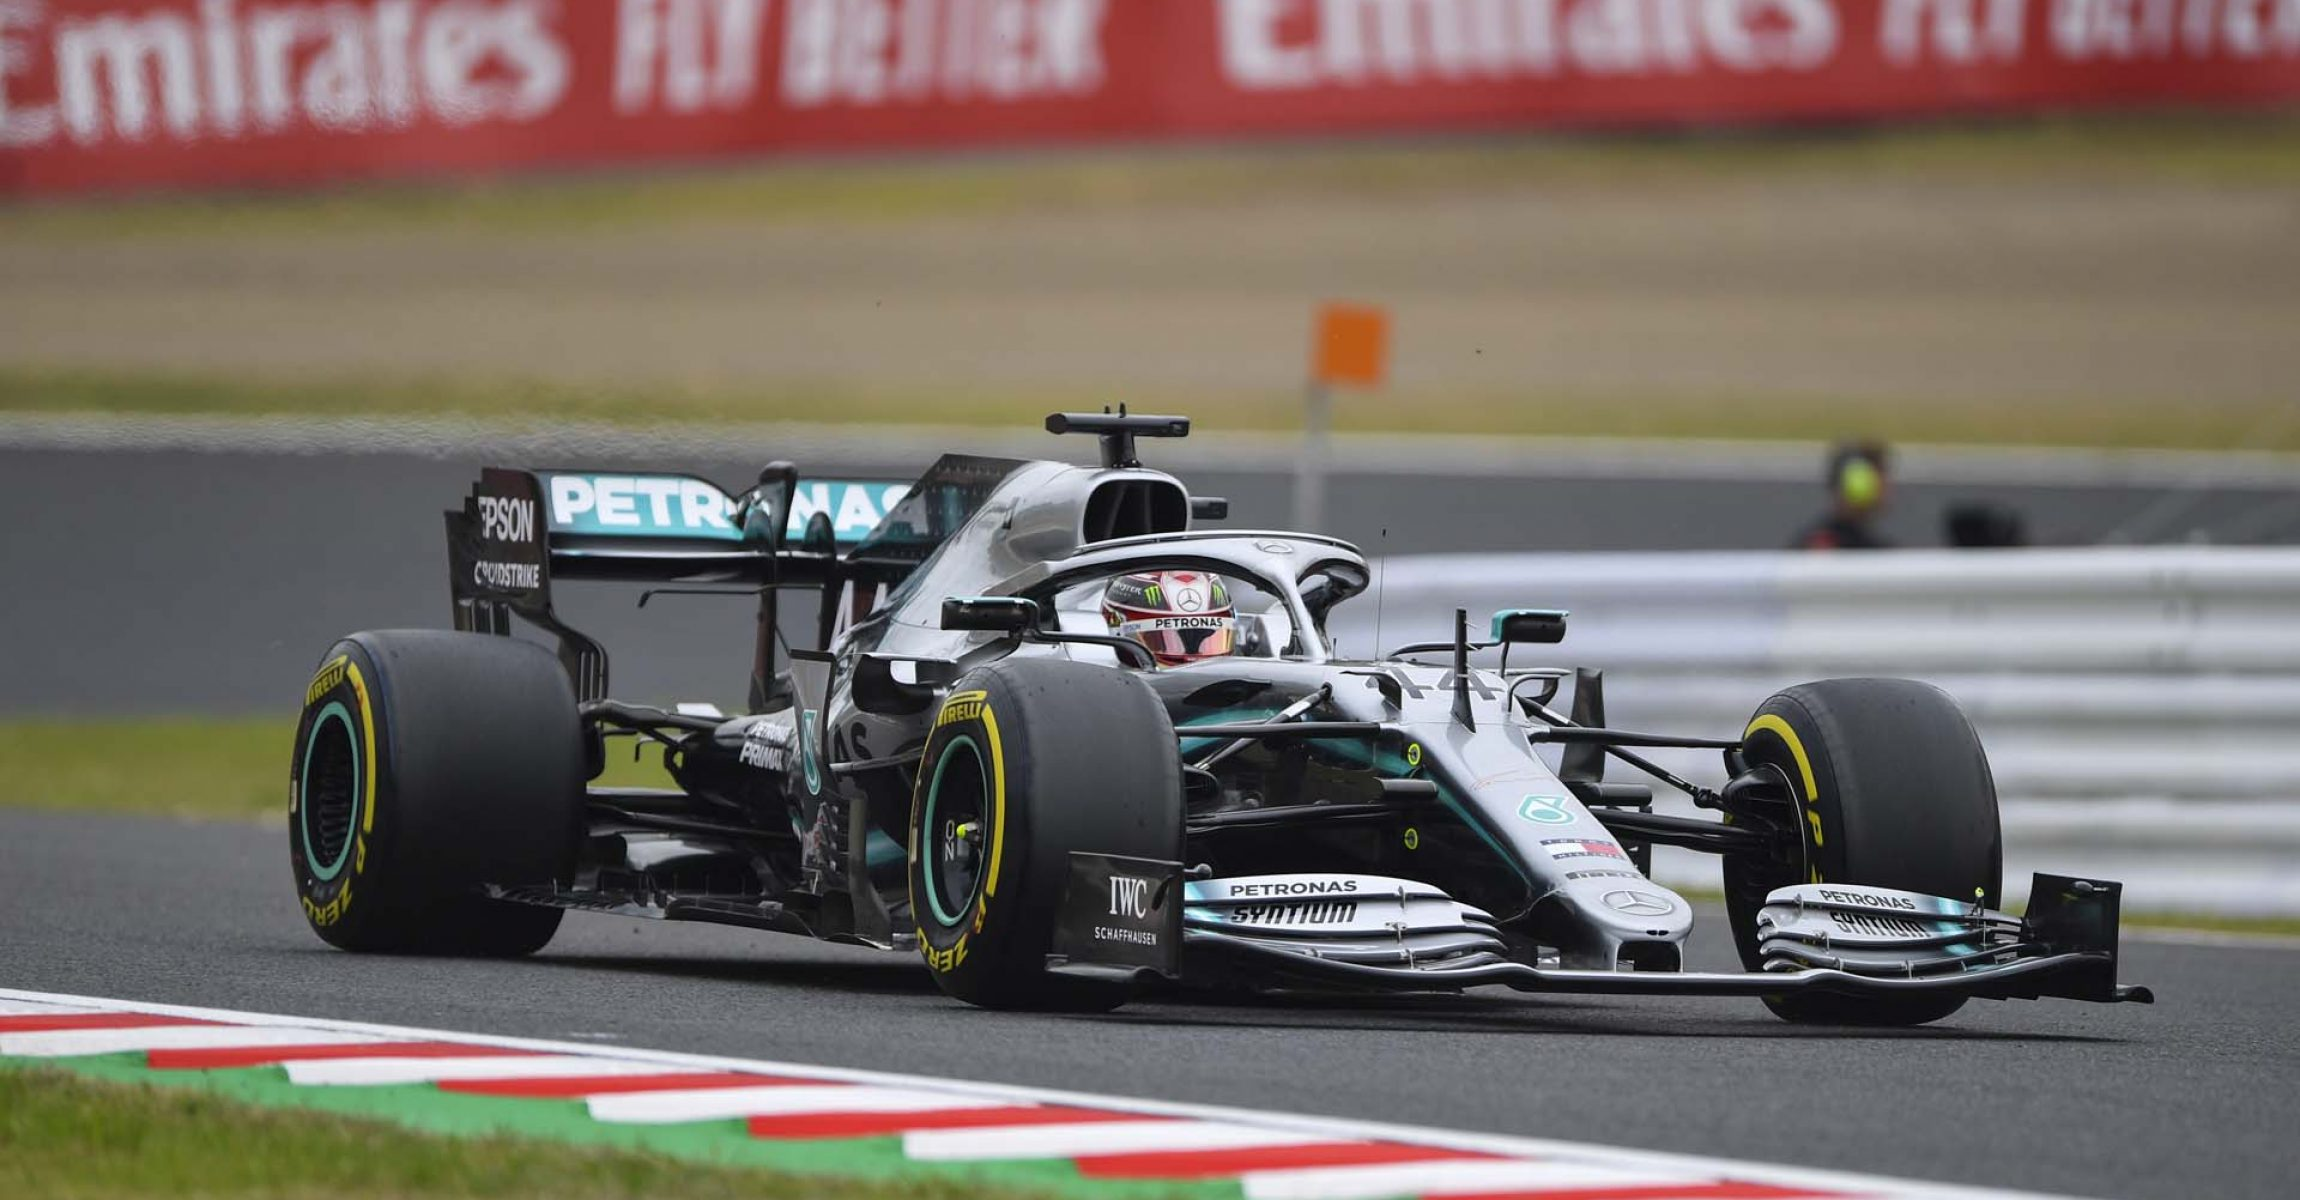 2019 Japanese Grand Prix, Friday - LAT Images Lewis Hamilton Mercedes